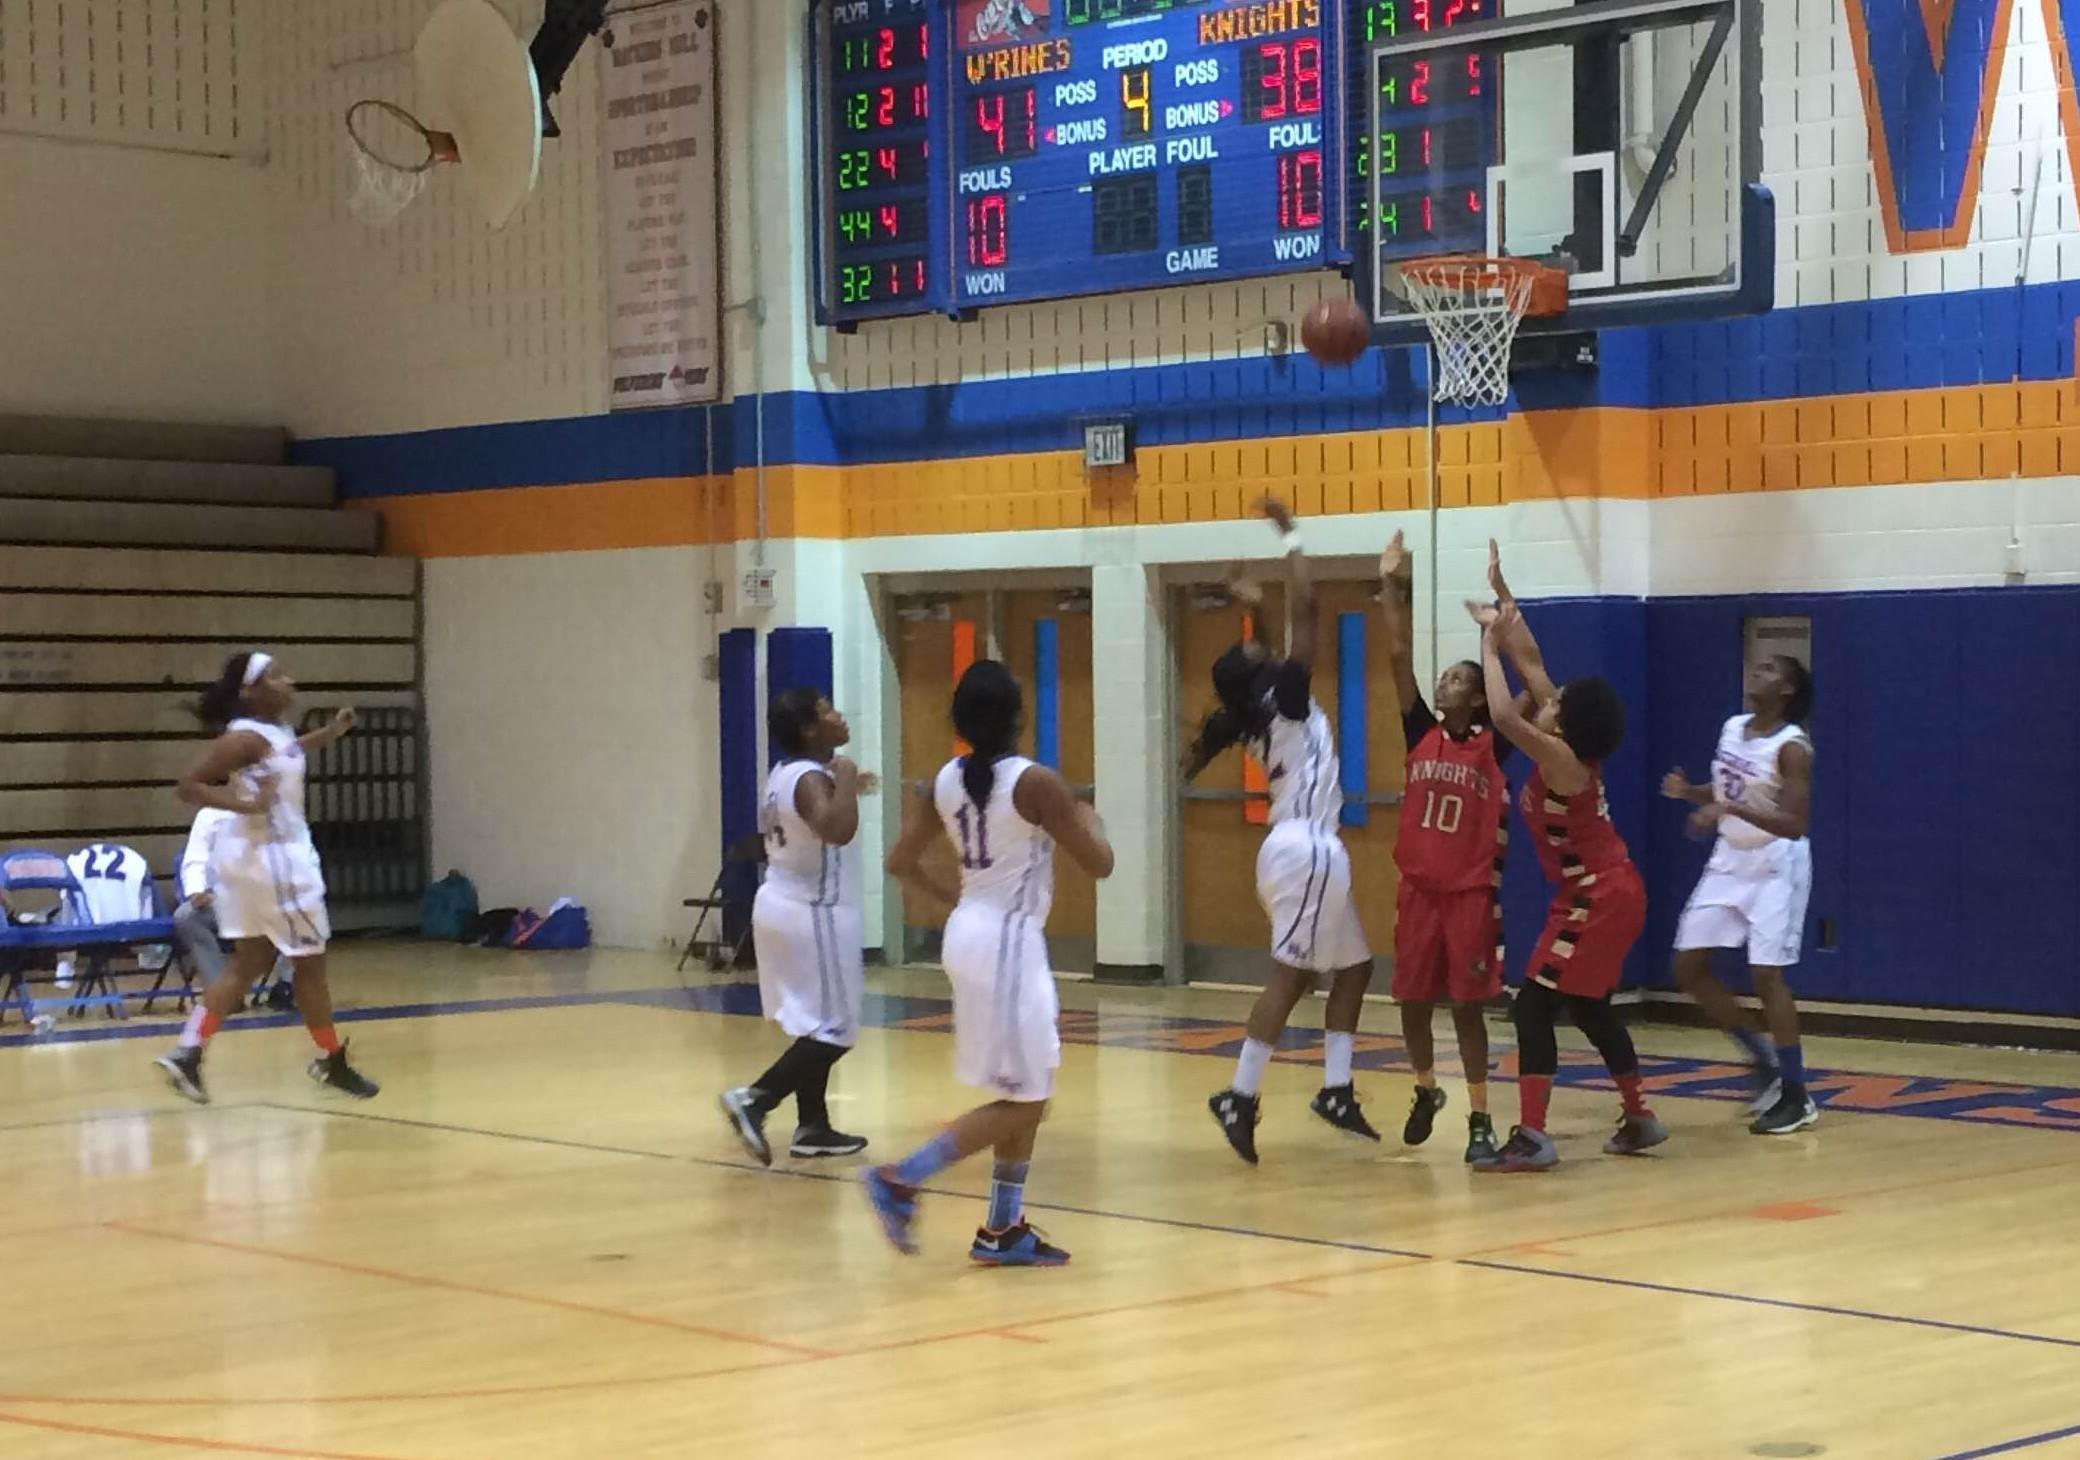 Sophomore Princess Frazier shoots a buzzer beater to win against the Wheaton Knights on Monday.